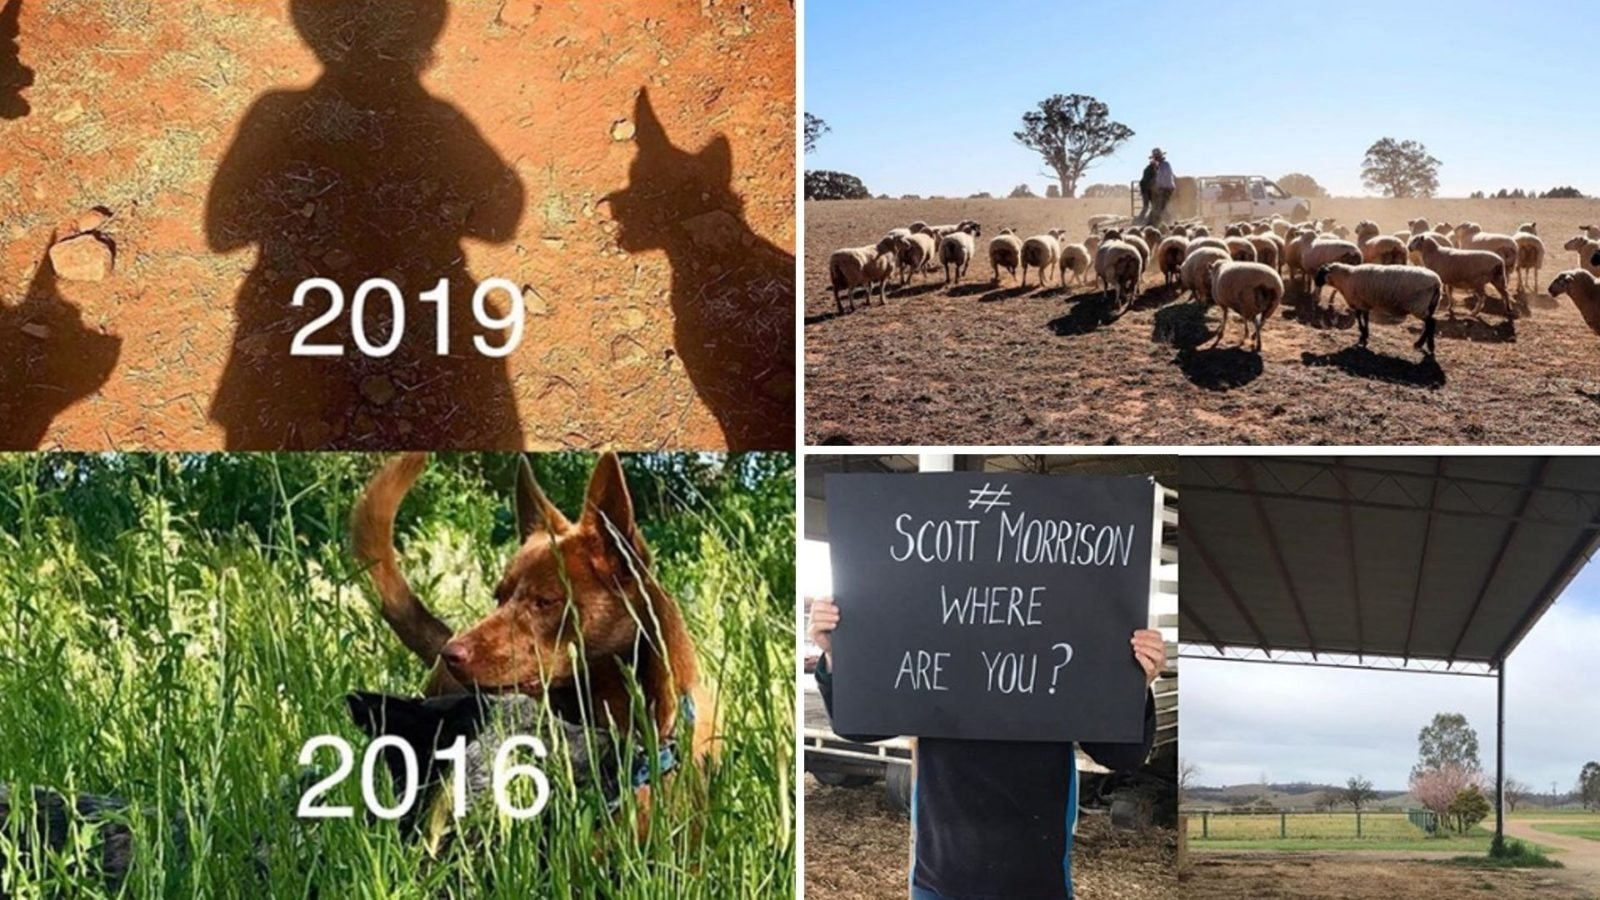 Farmers drought photos where are you Scott Morrison